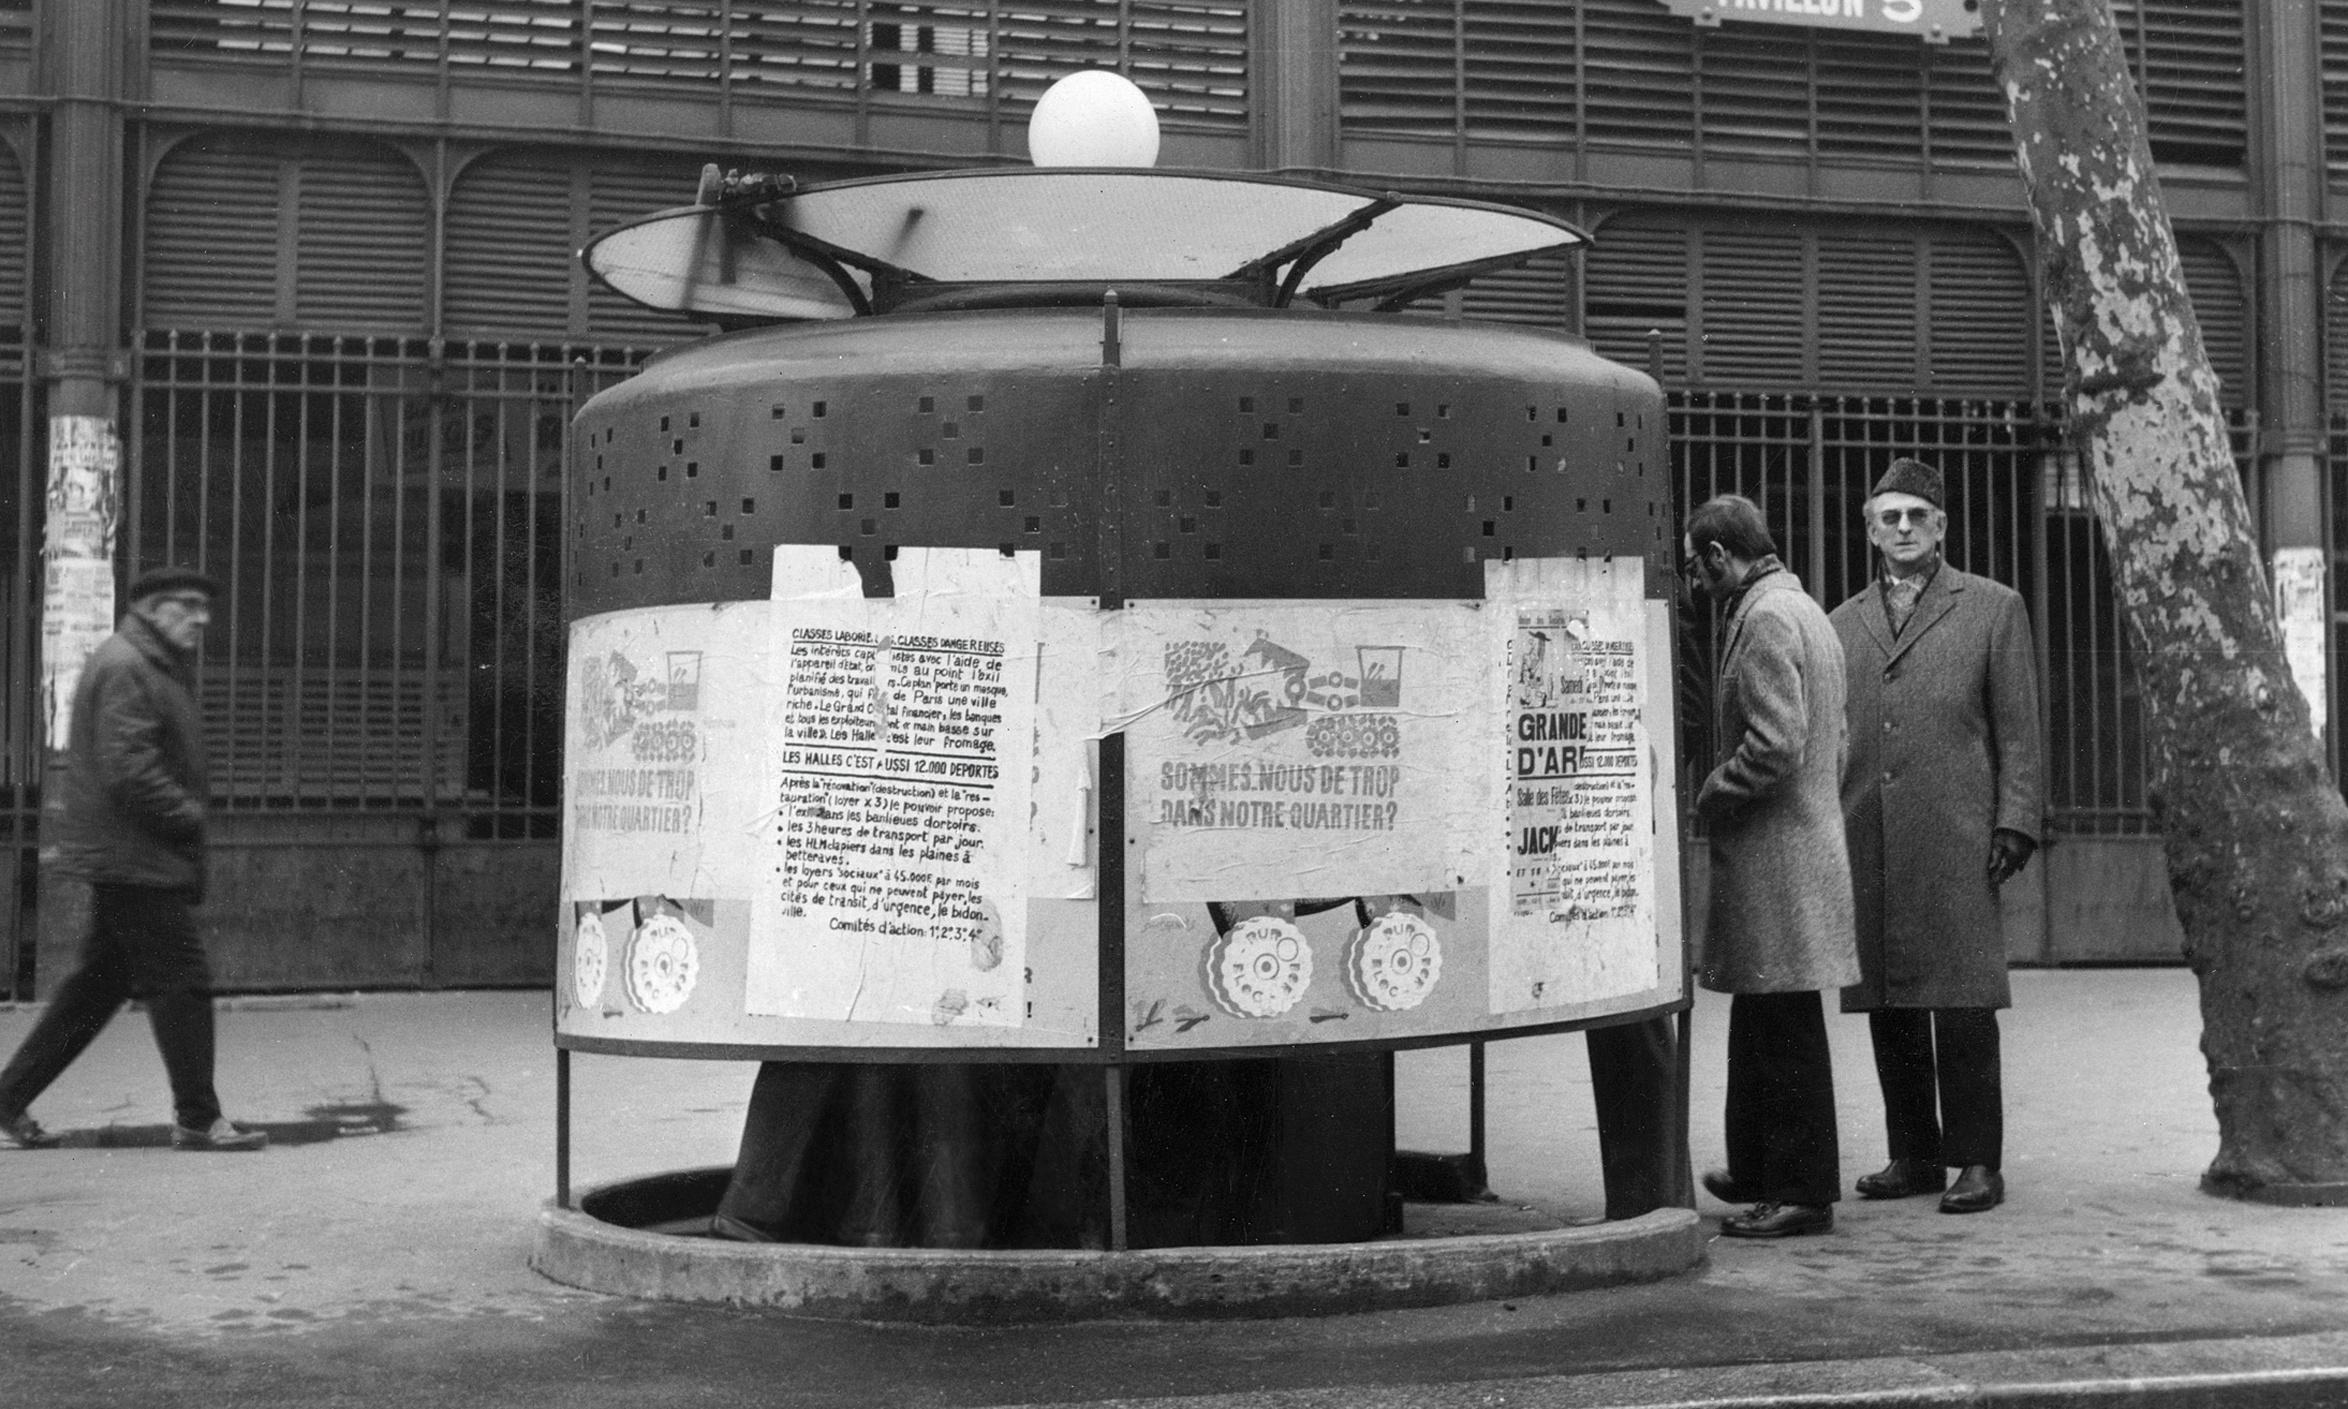 War and pissoirs: how the urinals of Paris helped beat the Nazis